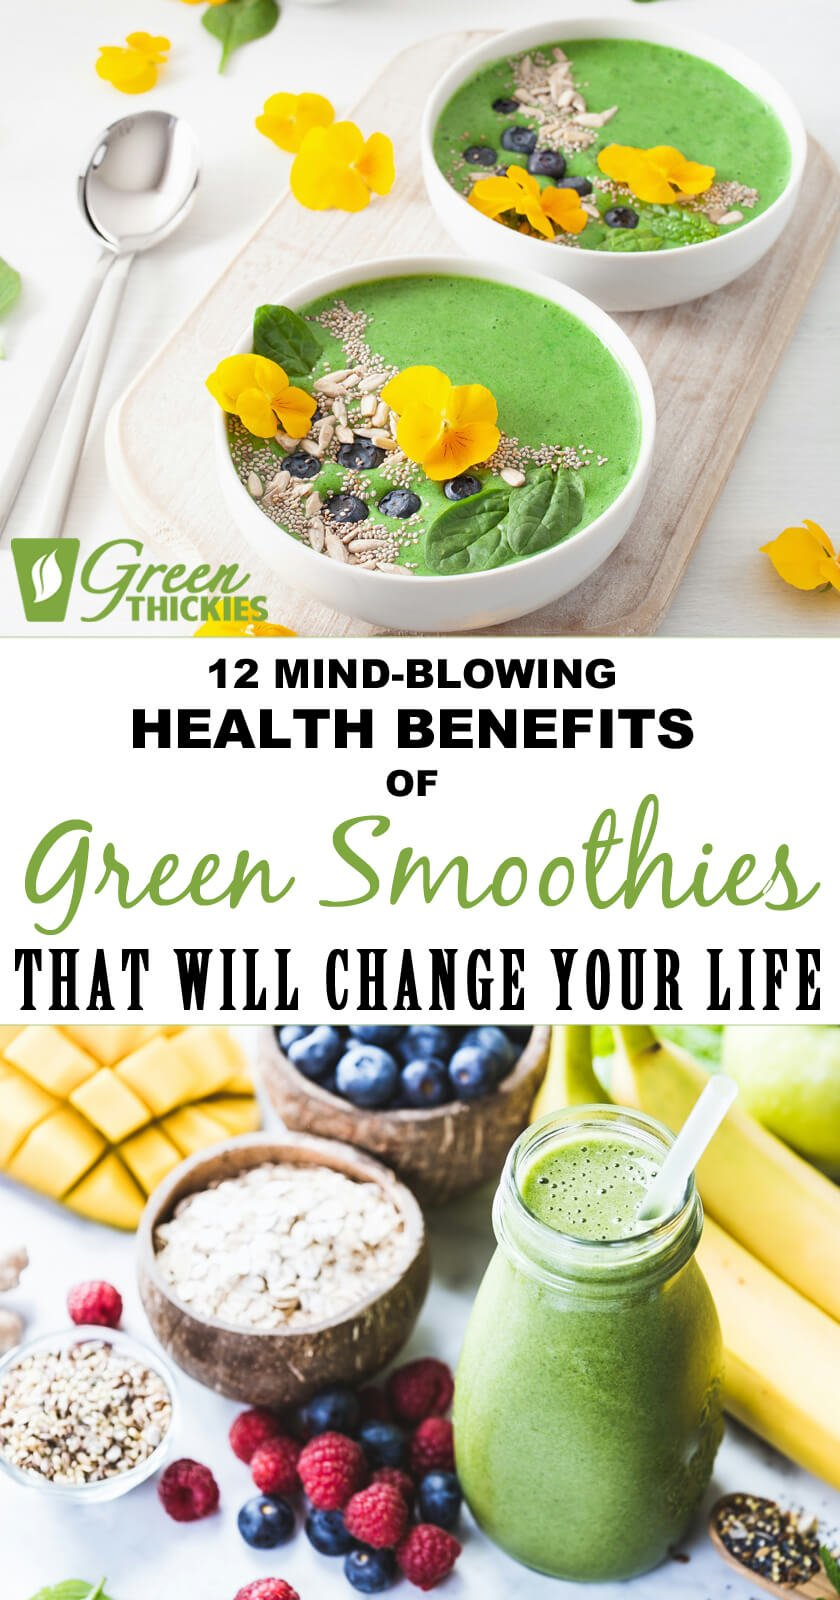 Green smoothies have changed my life. 7 years on and I'm still drinking 1-2 complete meal green smoothies per day.  The benefits of green smoothies can't be brushed under the carpet anymore.  It's time for the world to wake up and take notice. Are you ready to change your life?  #greenthickies #greensmoothies #weightloss #musclegain #energysmoothie #immunitysmoothie #digestionsmoothie #healthyliving #healthygreens #detox #weightloss#mealreplacementdrink #spinach #kale #smoothies